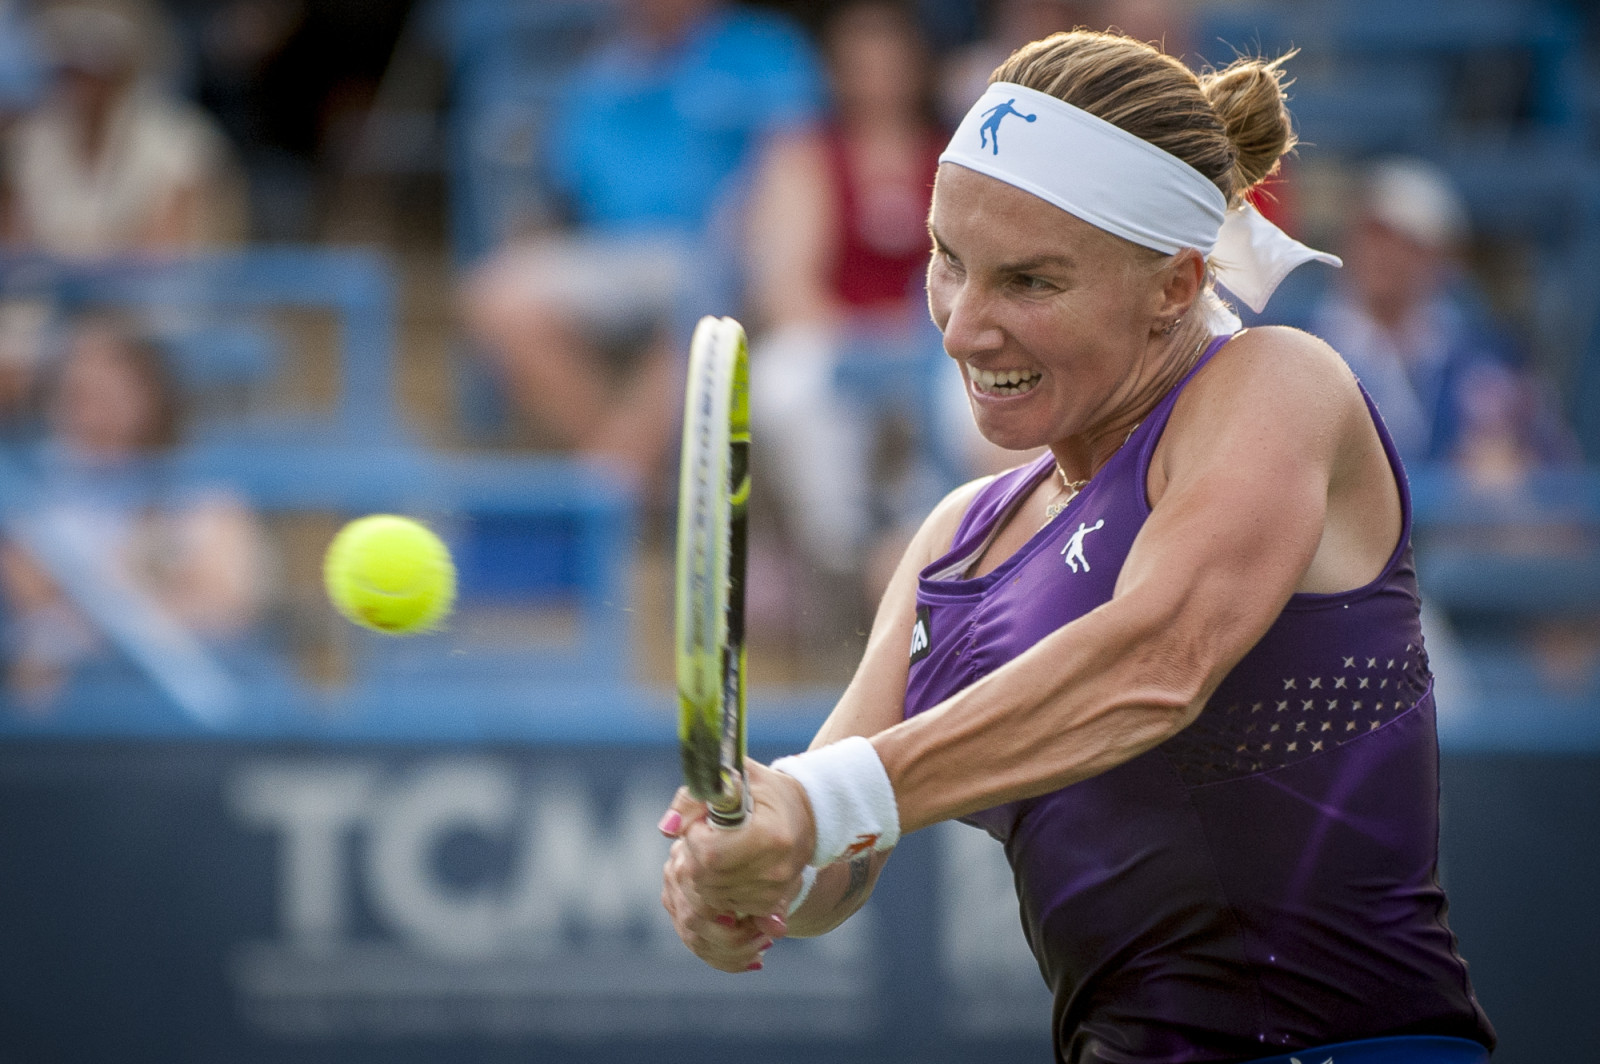 Svetlana Kuznetsova of Russia returns a shot to Kurumi Nara of Japan during their finals singles match at the Citi Open ATP tennis tournament in Washington, DC, USA, 3 Aug 2014. Kuznetsova won the women's final 6-3, 4-6, 6-4.